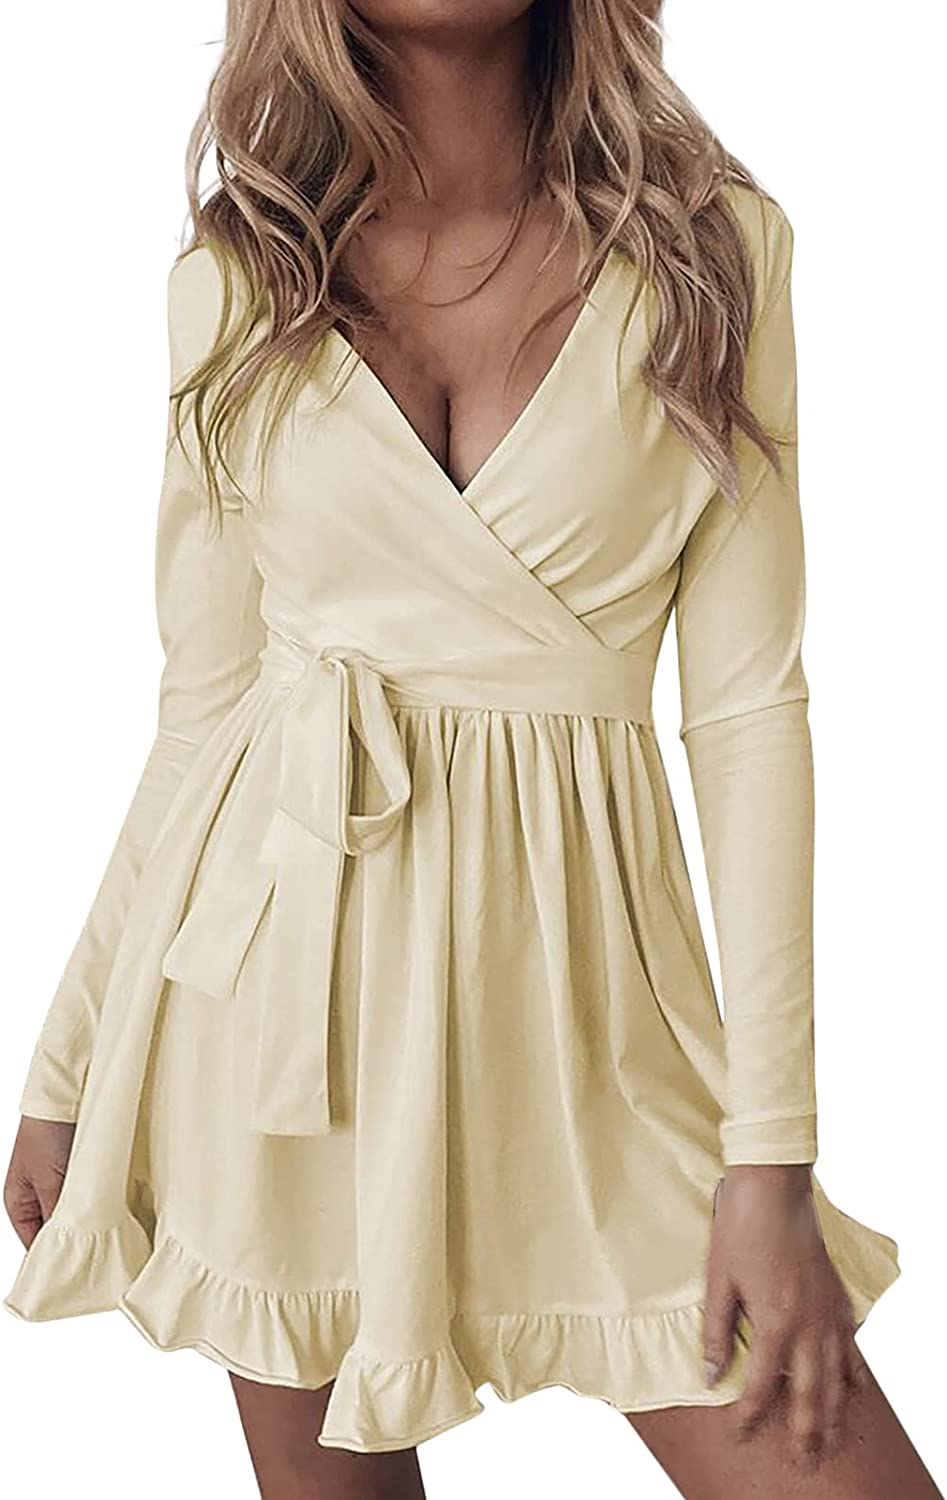 Women's Low Cut Solid Color Ruffle Hem With Tie Belt V-Neck Long Sleeve Fashion Sexy Casual Short Dress